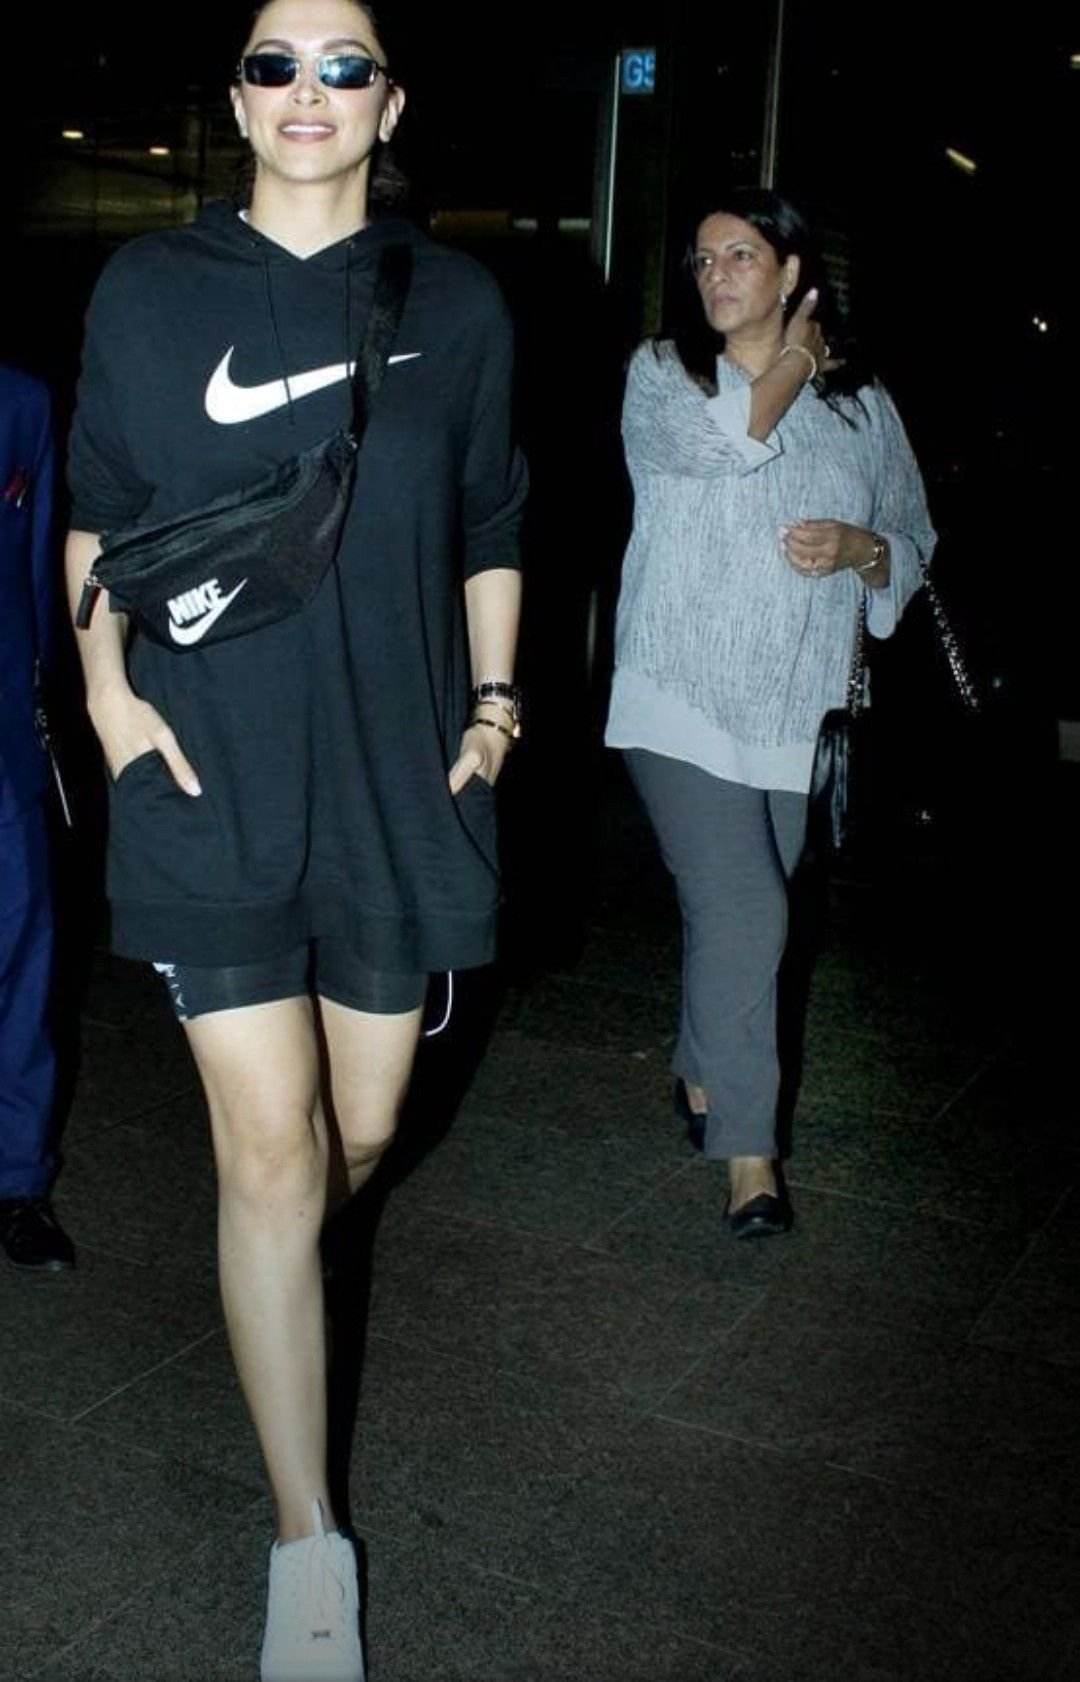 Deepika Padukone and her mother in law at the airport ...